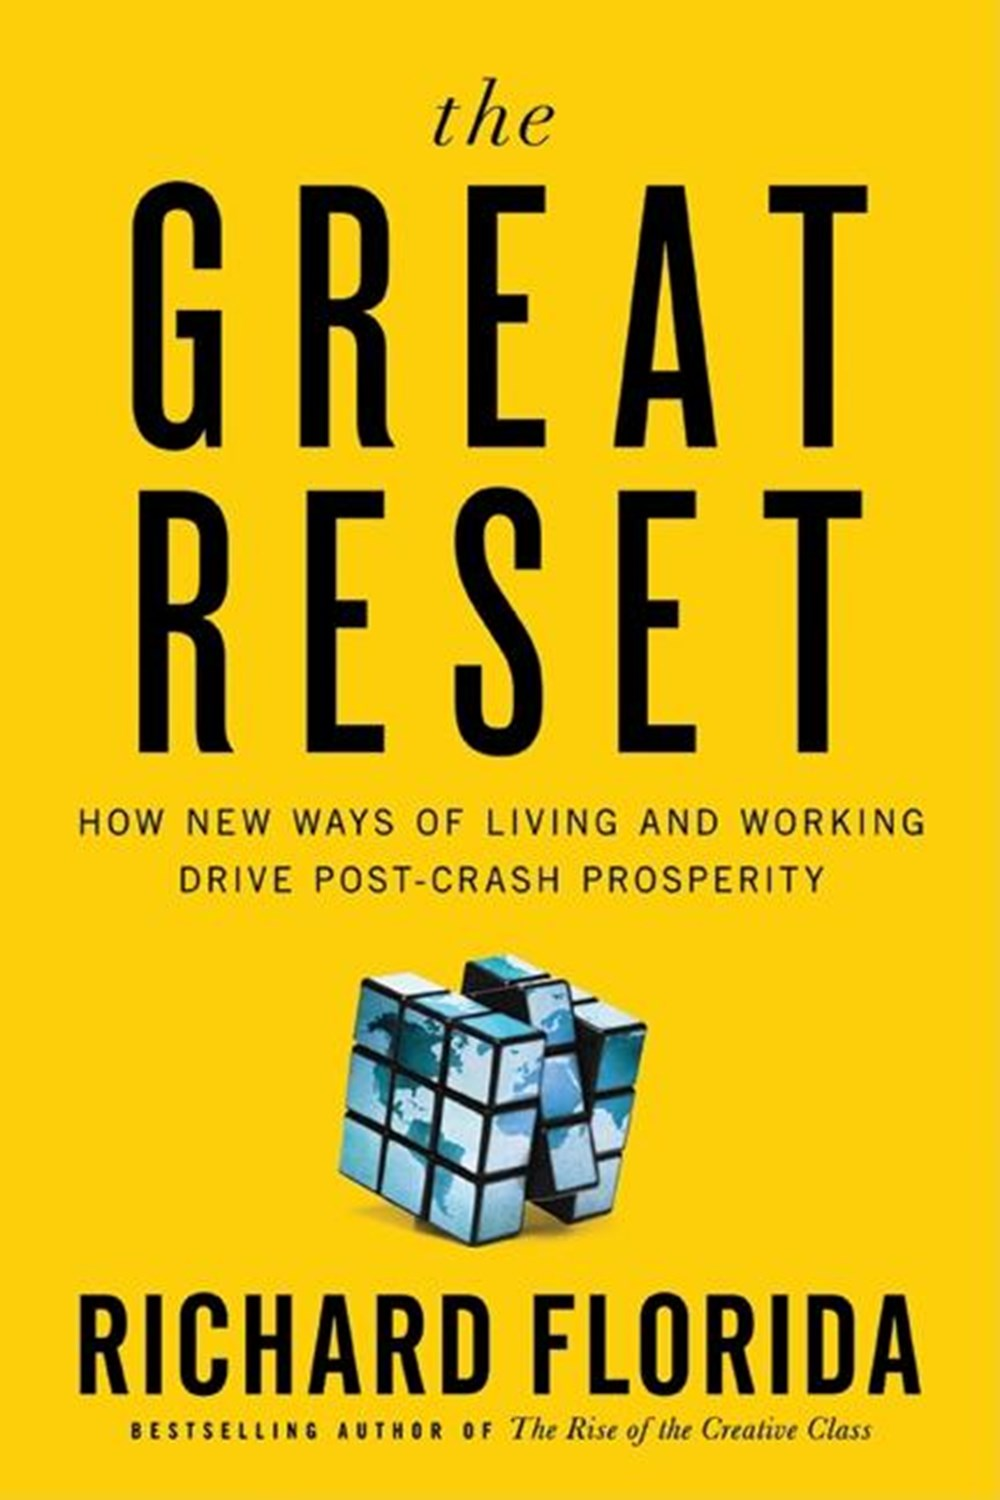 Great Reset How the Post-Crash Economy Will Change the Way We Live and Work